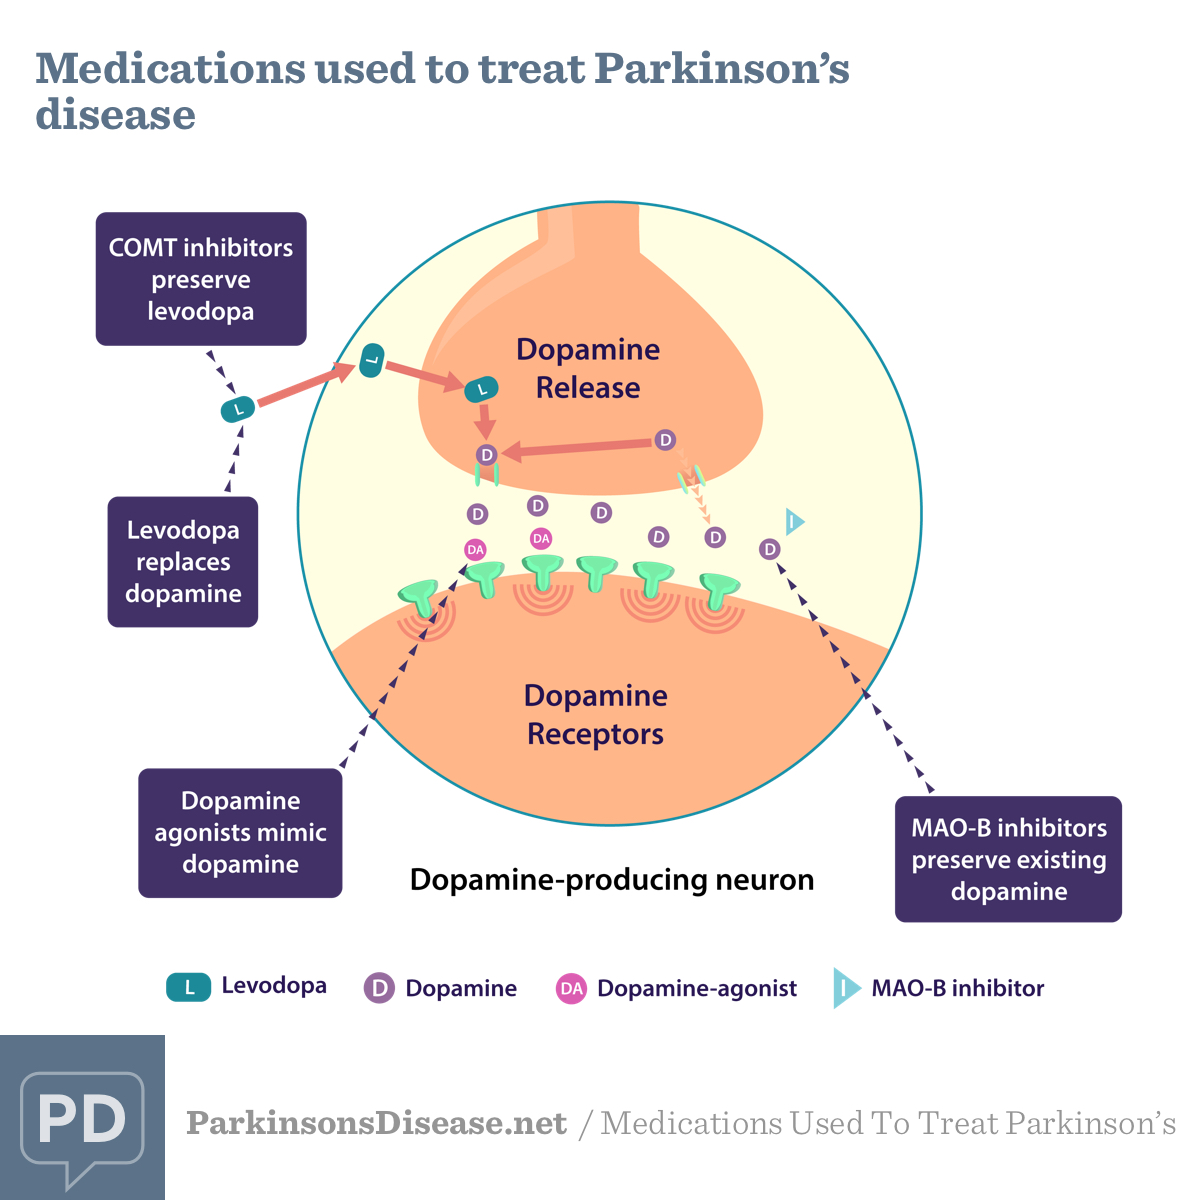 Medications Used To Treat Parkinson's